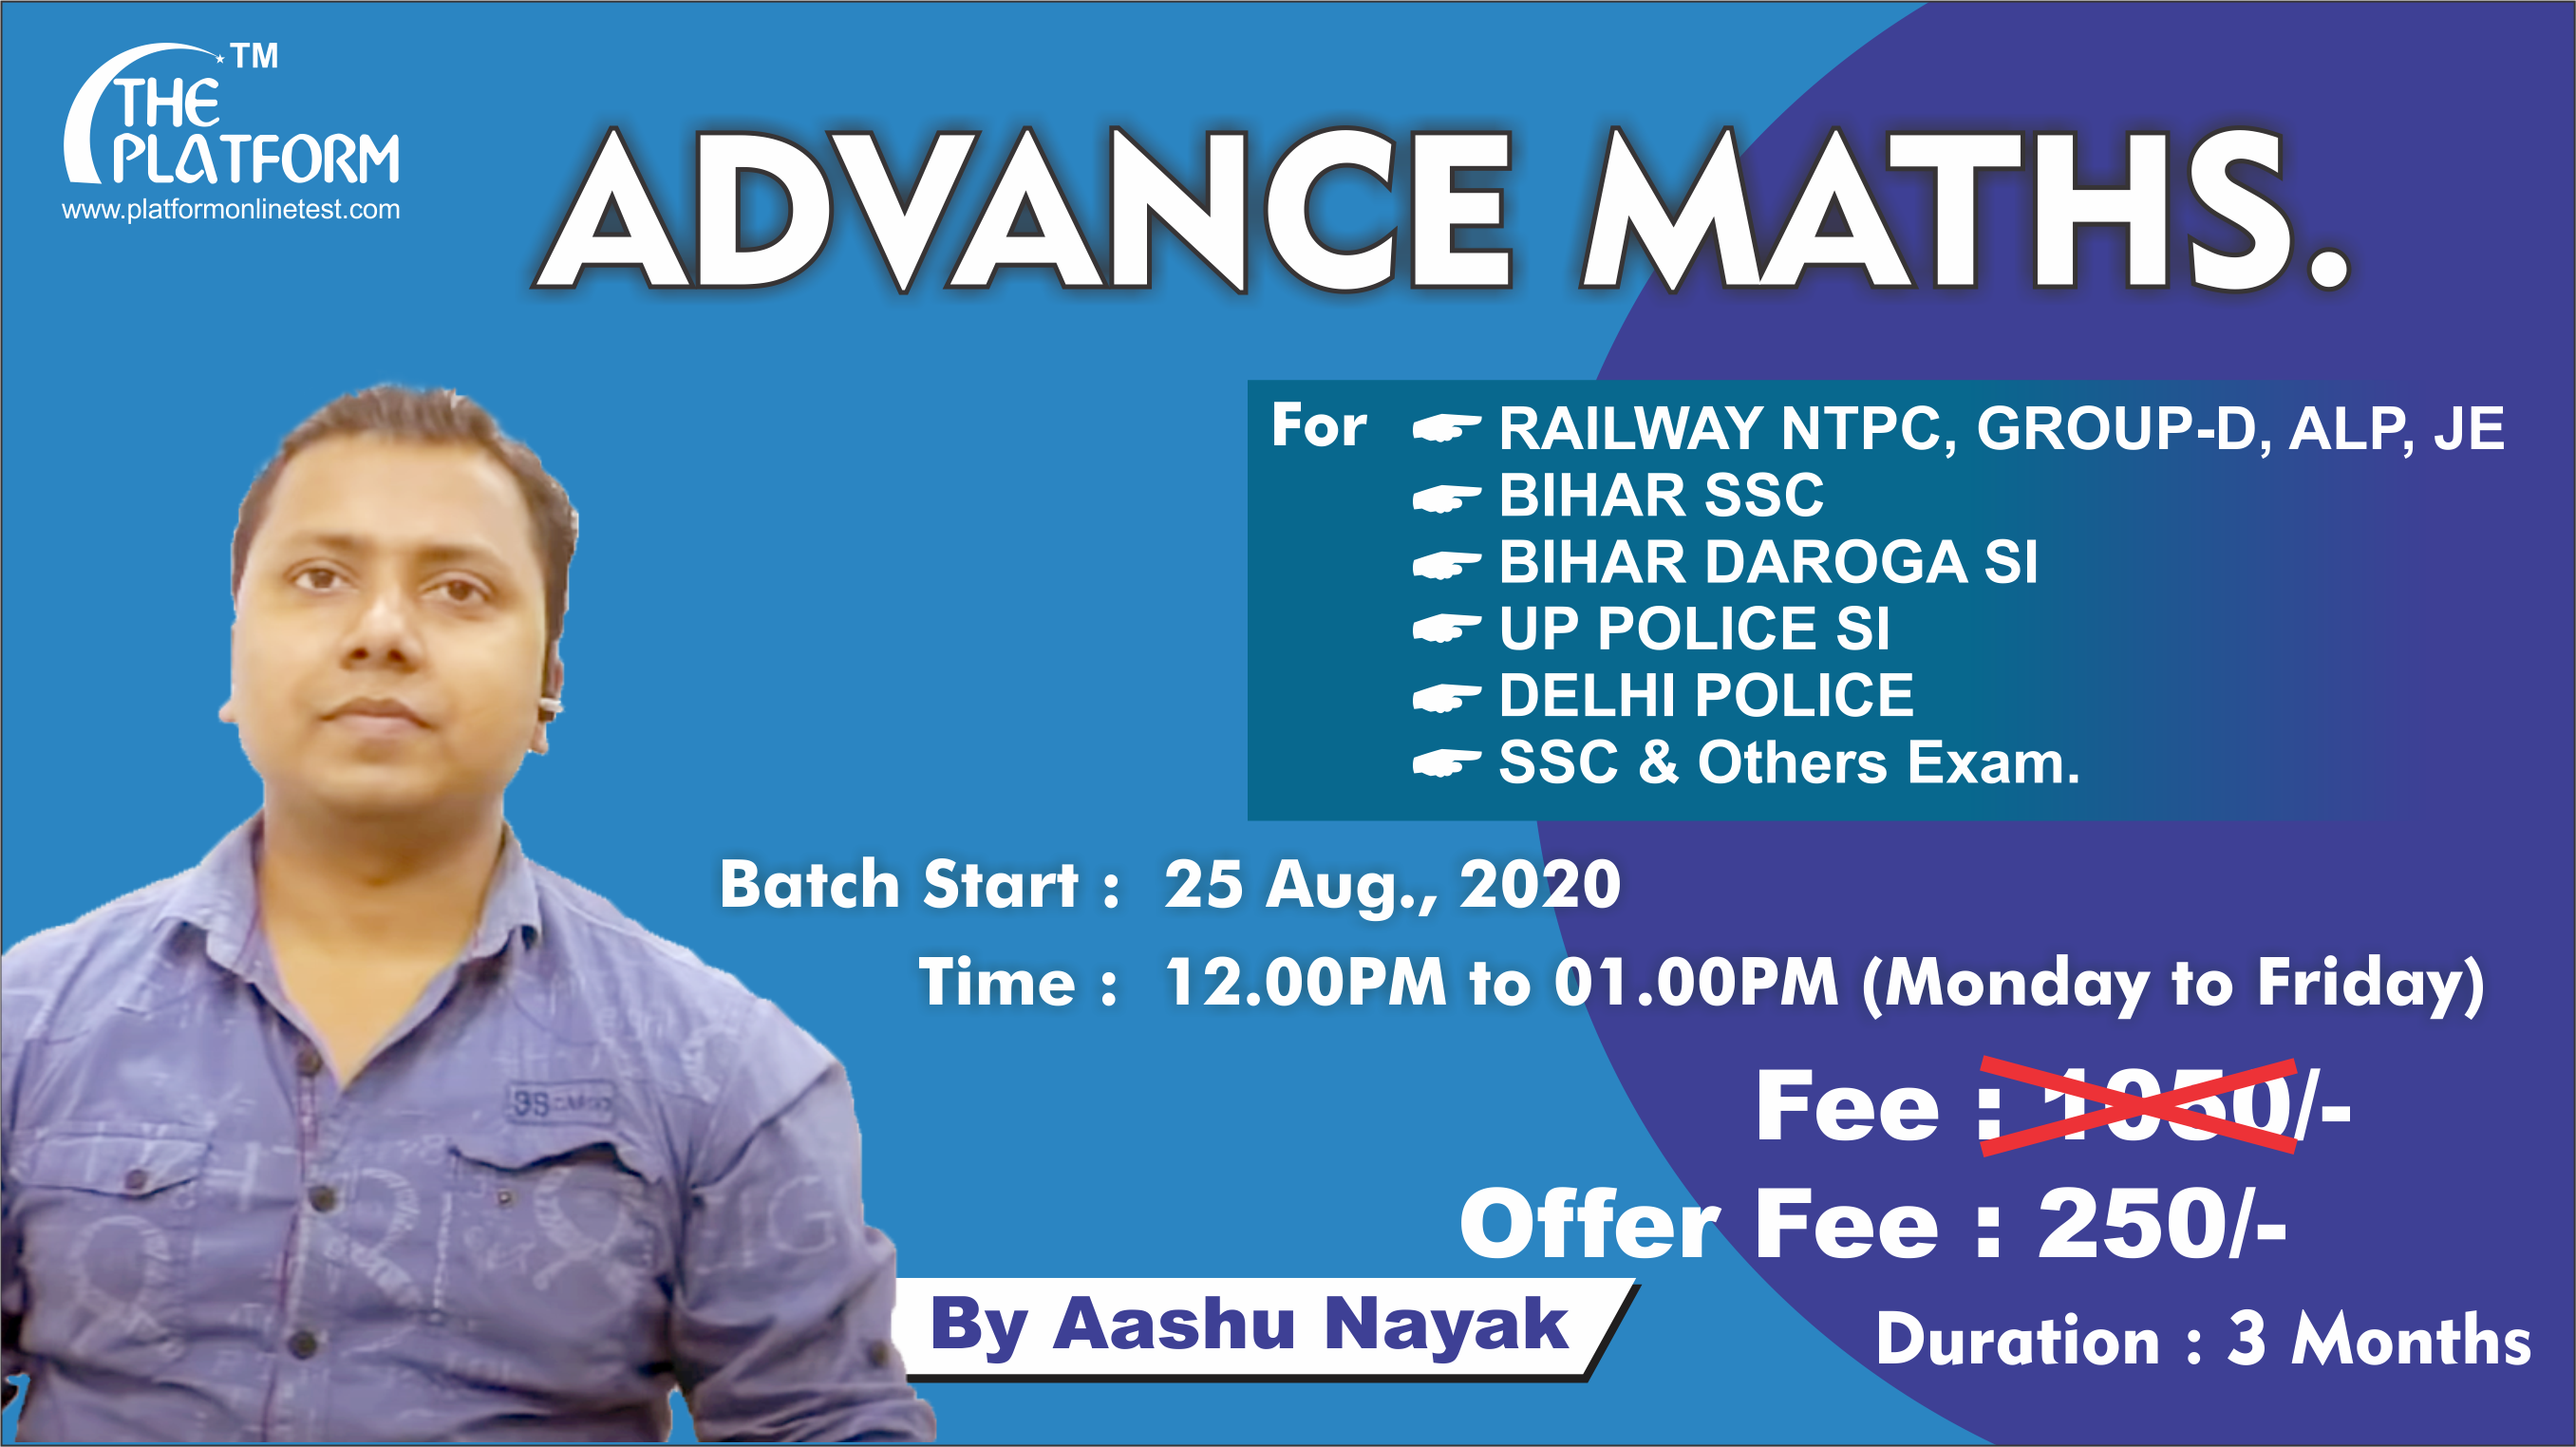 35-ADVANCE MATHS. By Aashu Nayak, Session-01